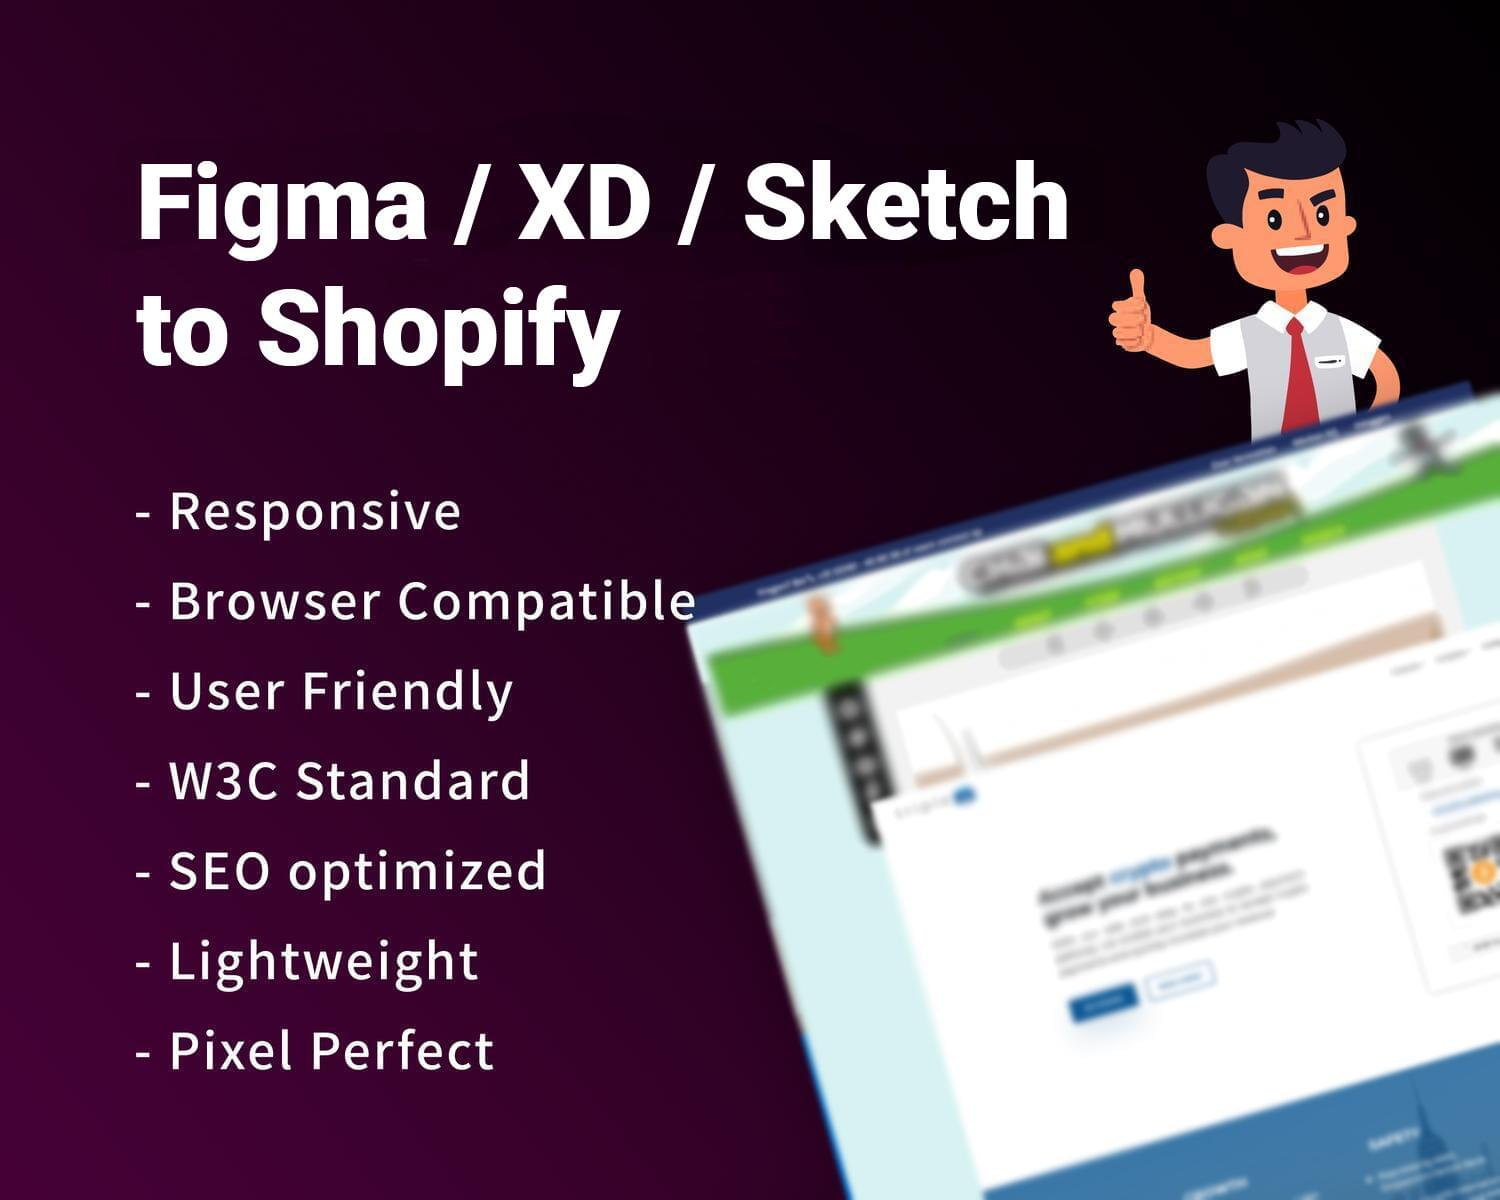 Figma / XD / Sketch to Shopify Conversion by hasanet - 119835